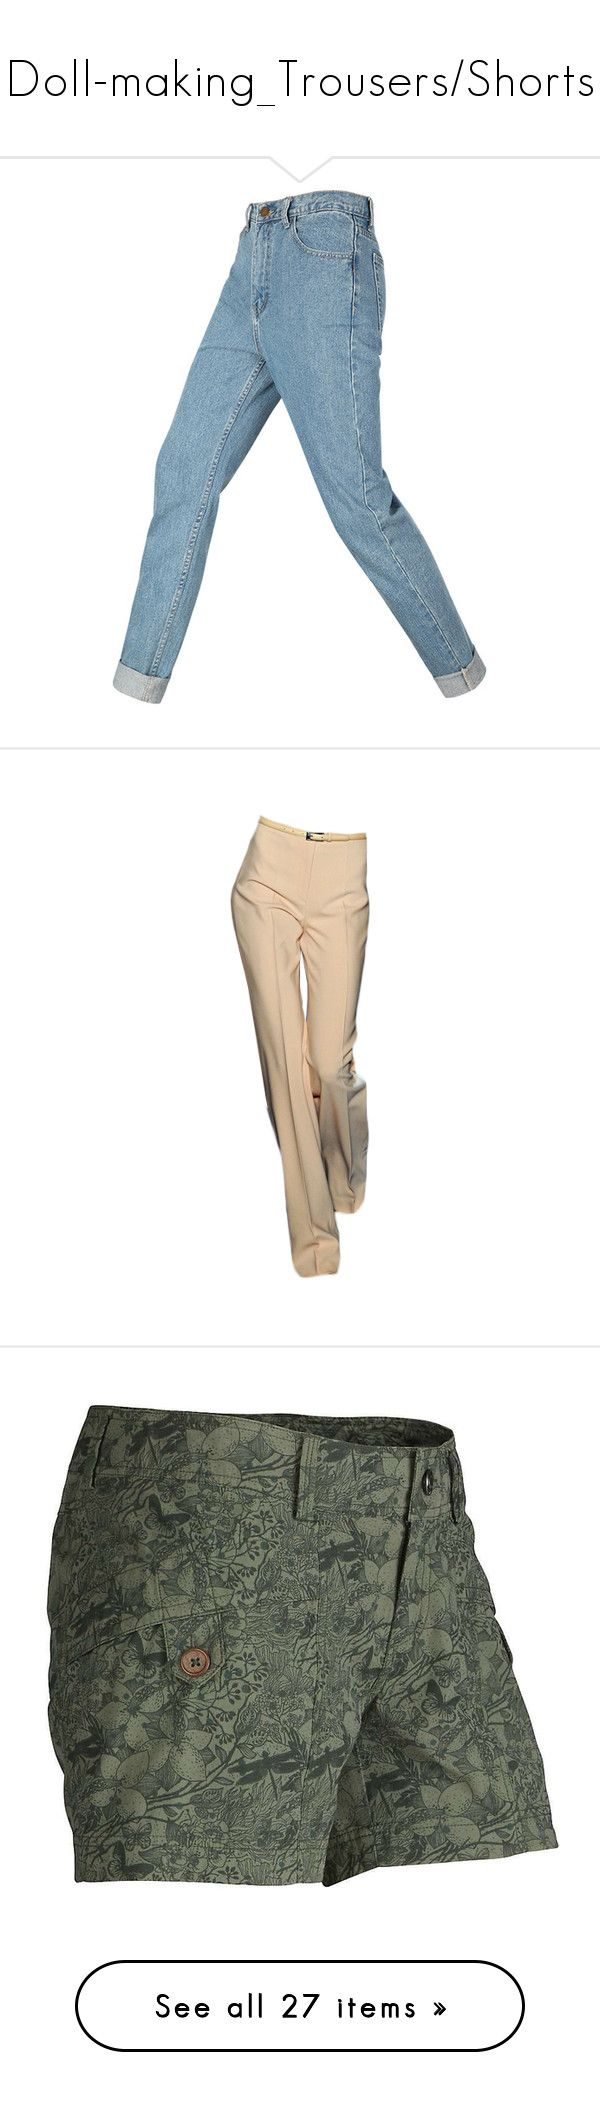 """""""Doll-making_Trousers/Shorts"""" by auntiehelen ❤ liked on Polyvore featuring pants, jeans, bottoms, trousers, pantaloni, брюки, beige pants, activewear, activewear shorts and vintage ivy camo"""